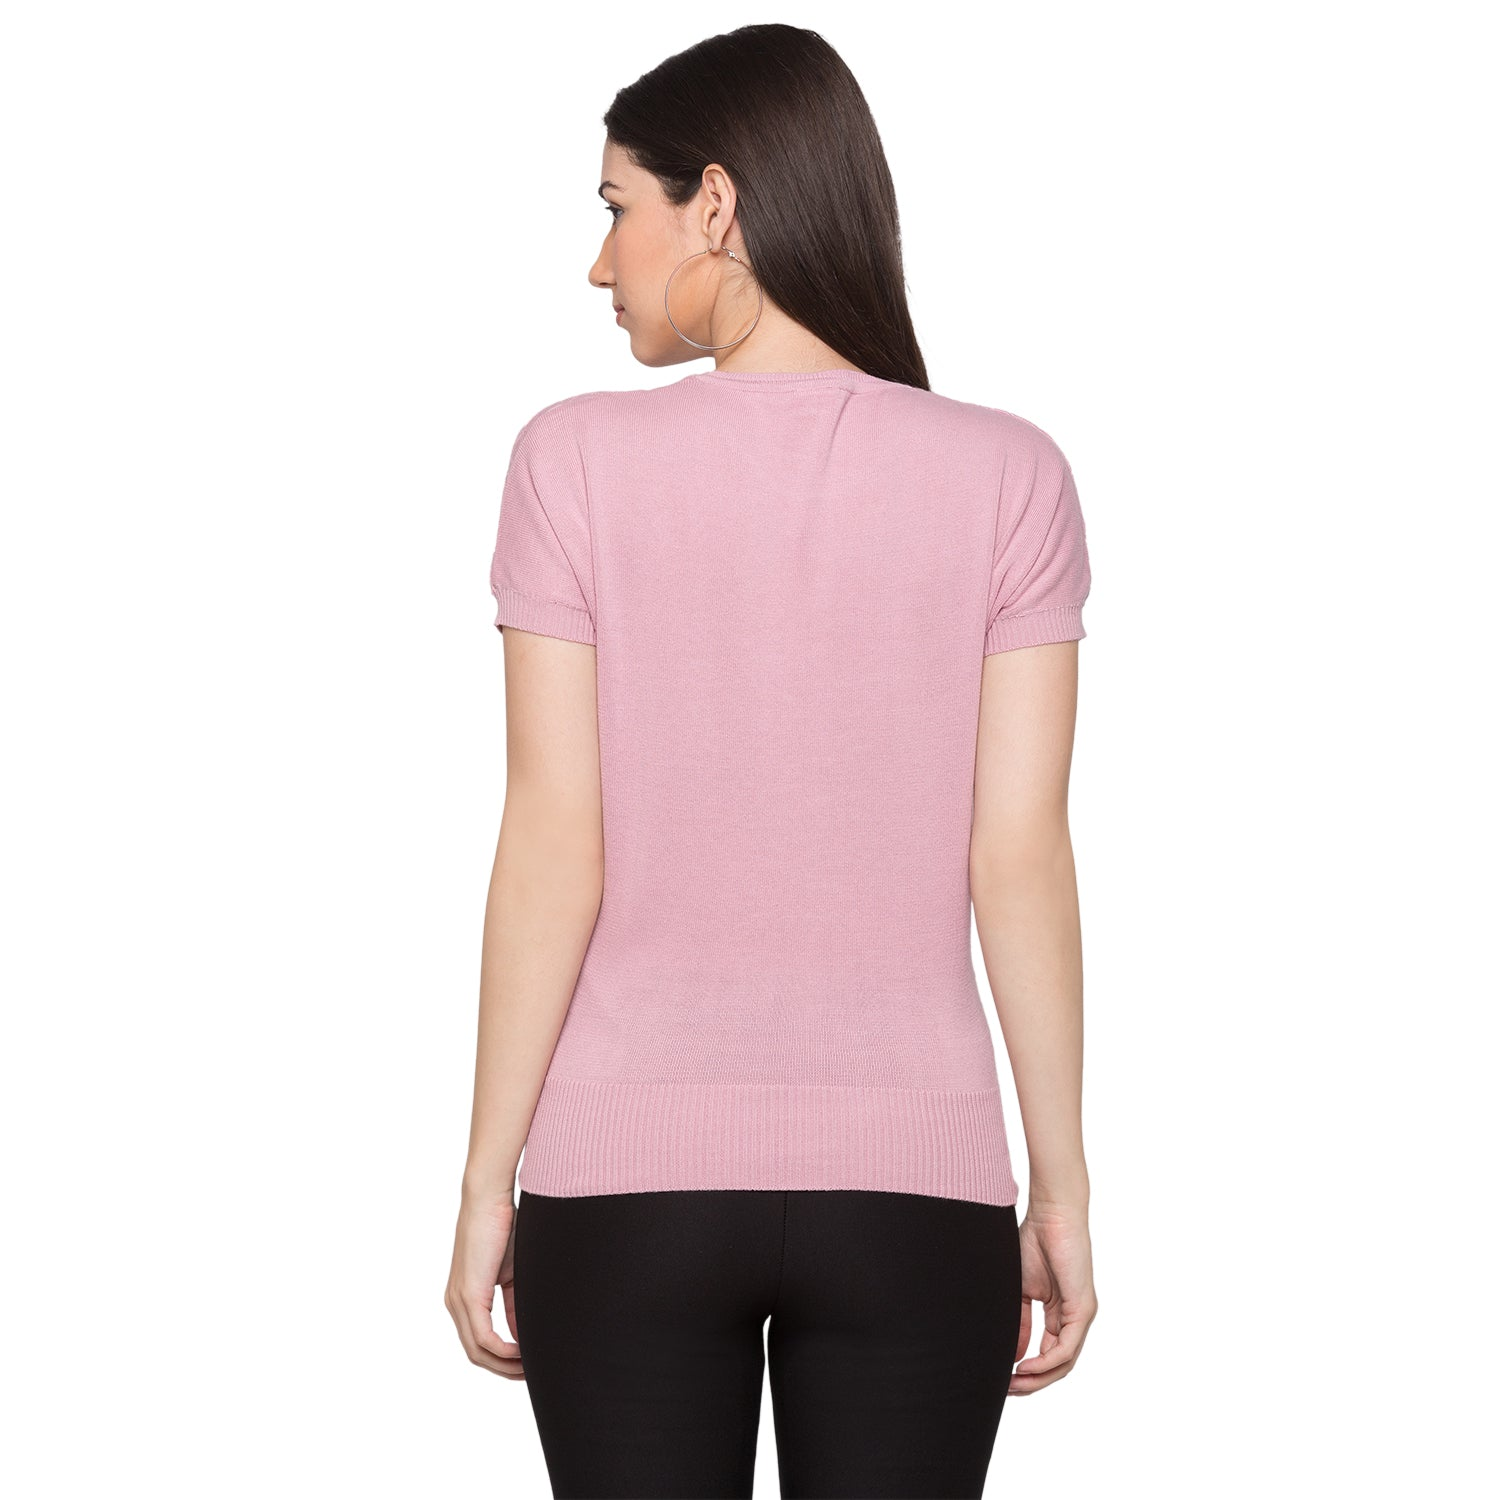 Globus Pink Knitted Top3